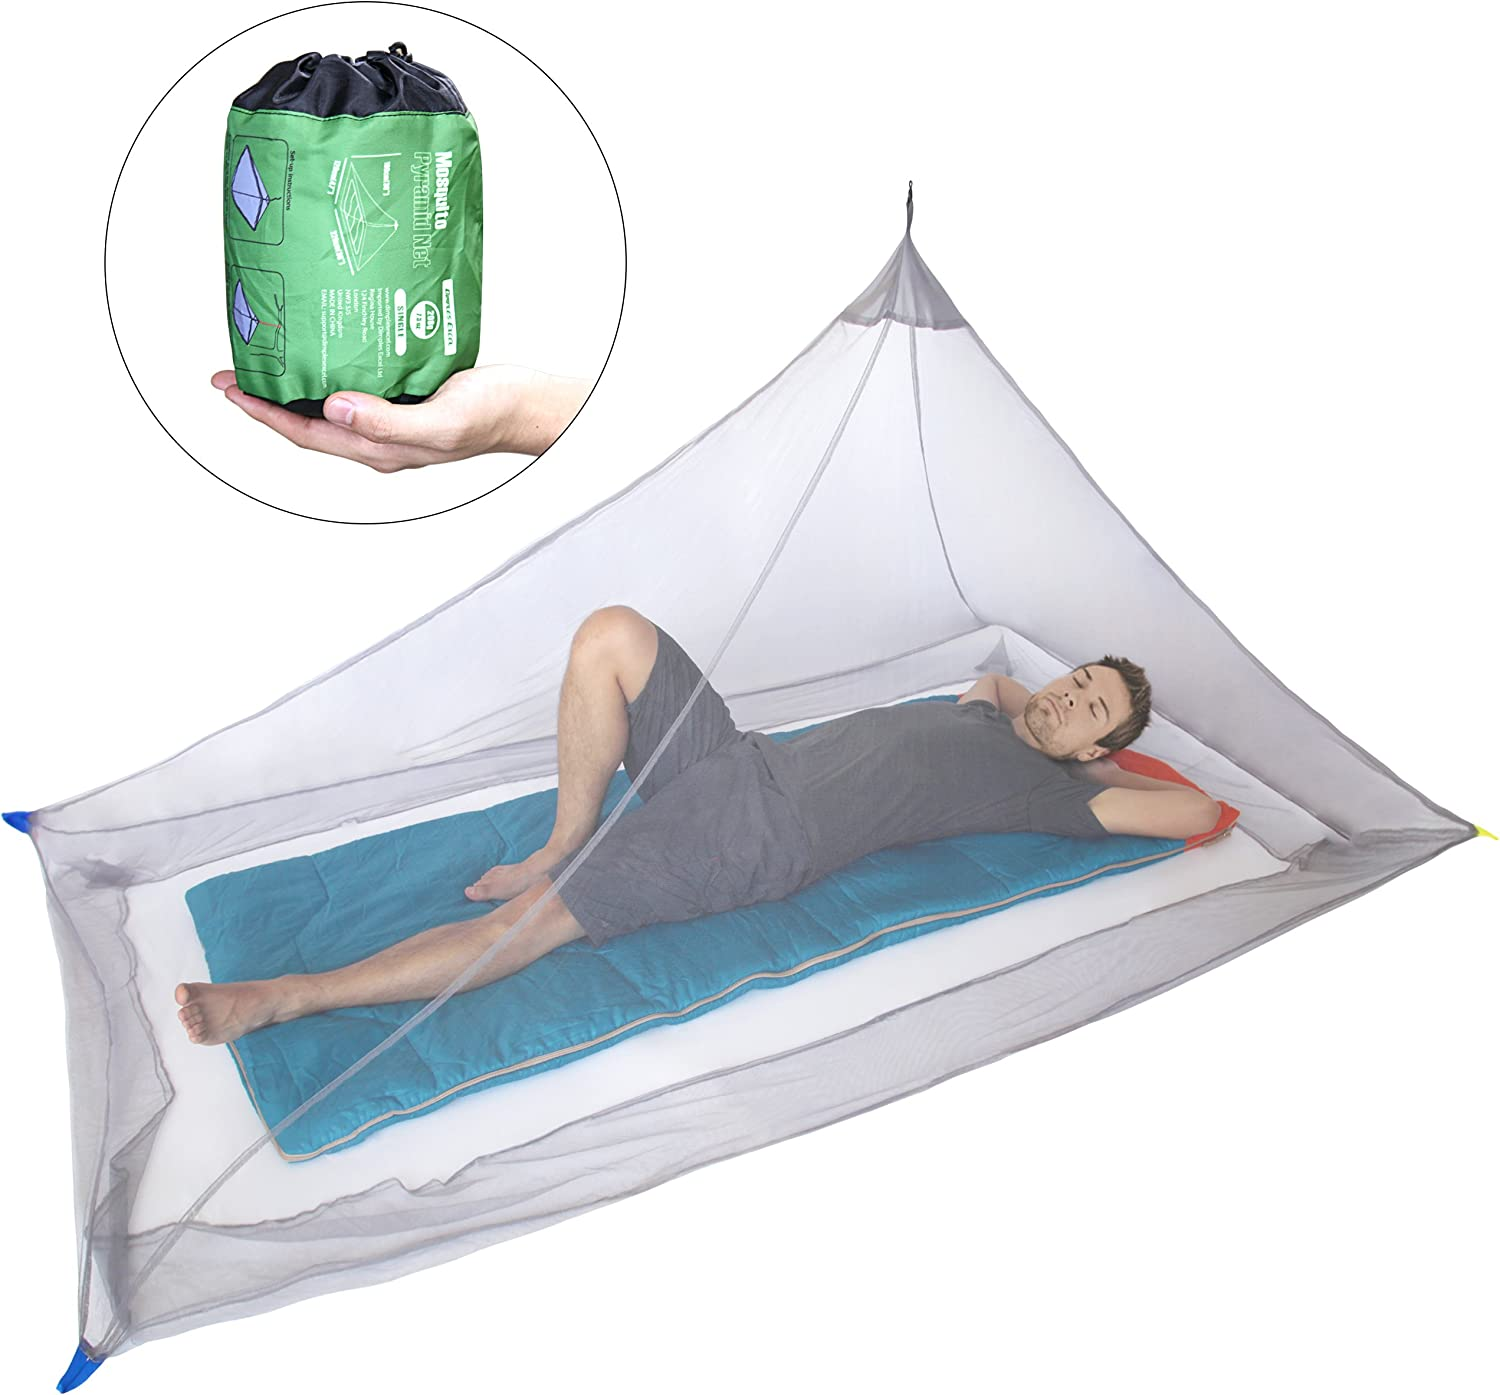 Mosquito Net for Single Camping Bed Compact and Lightweight